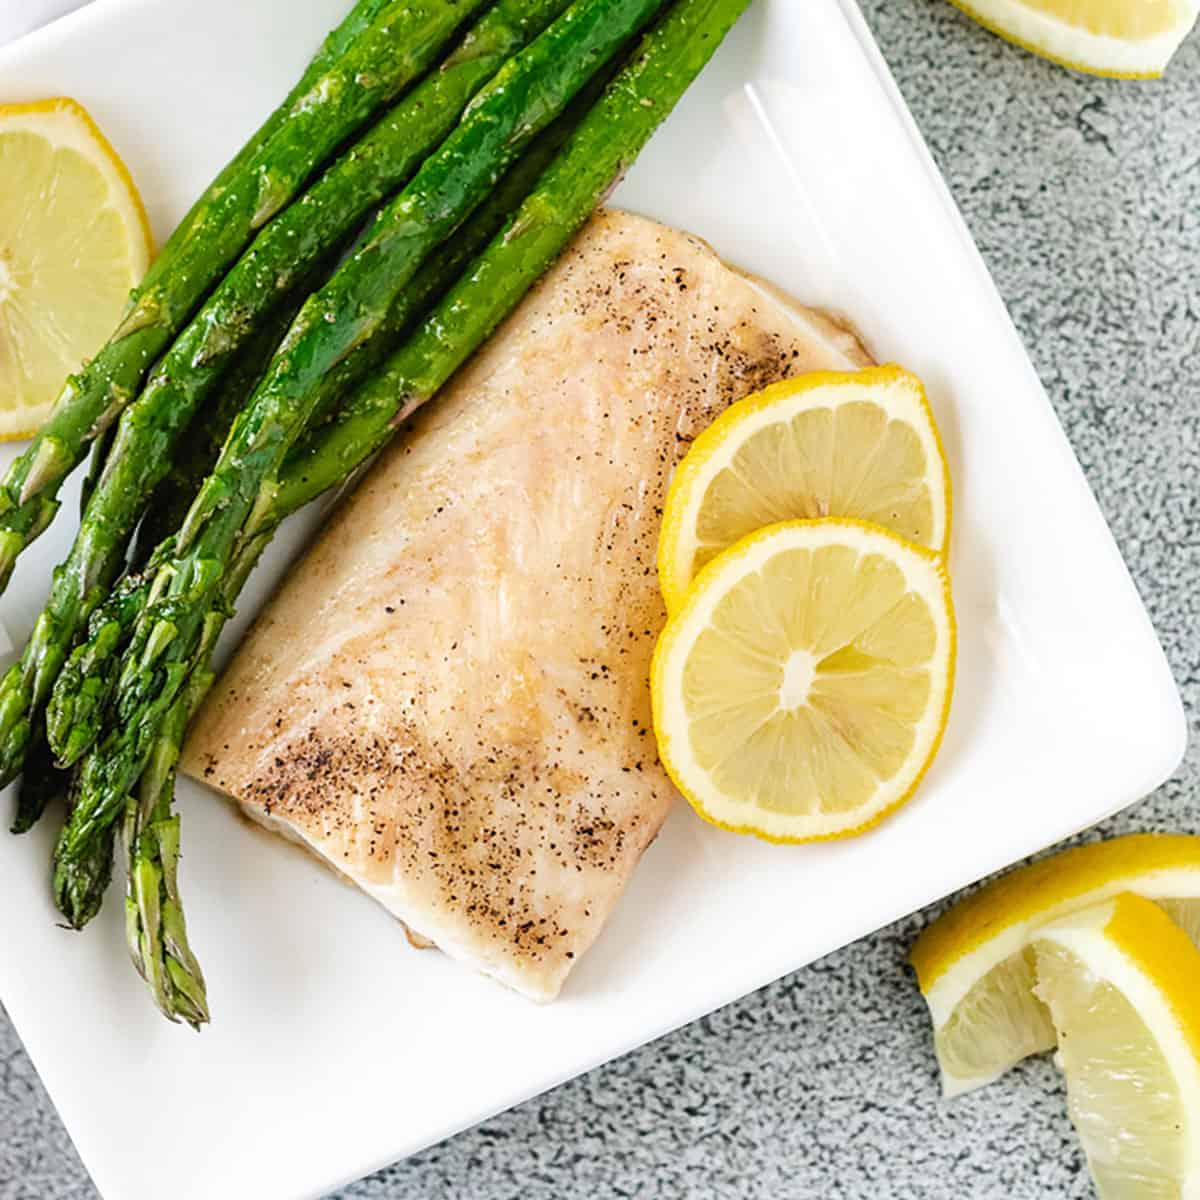 Top down view of a piece of Mahi Mahi new to sauteed asparagus and fresh lemon.